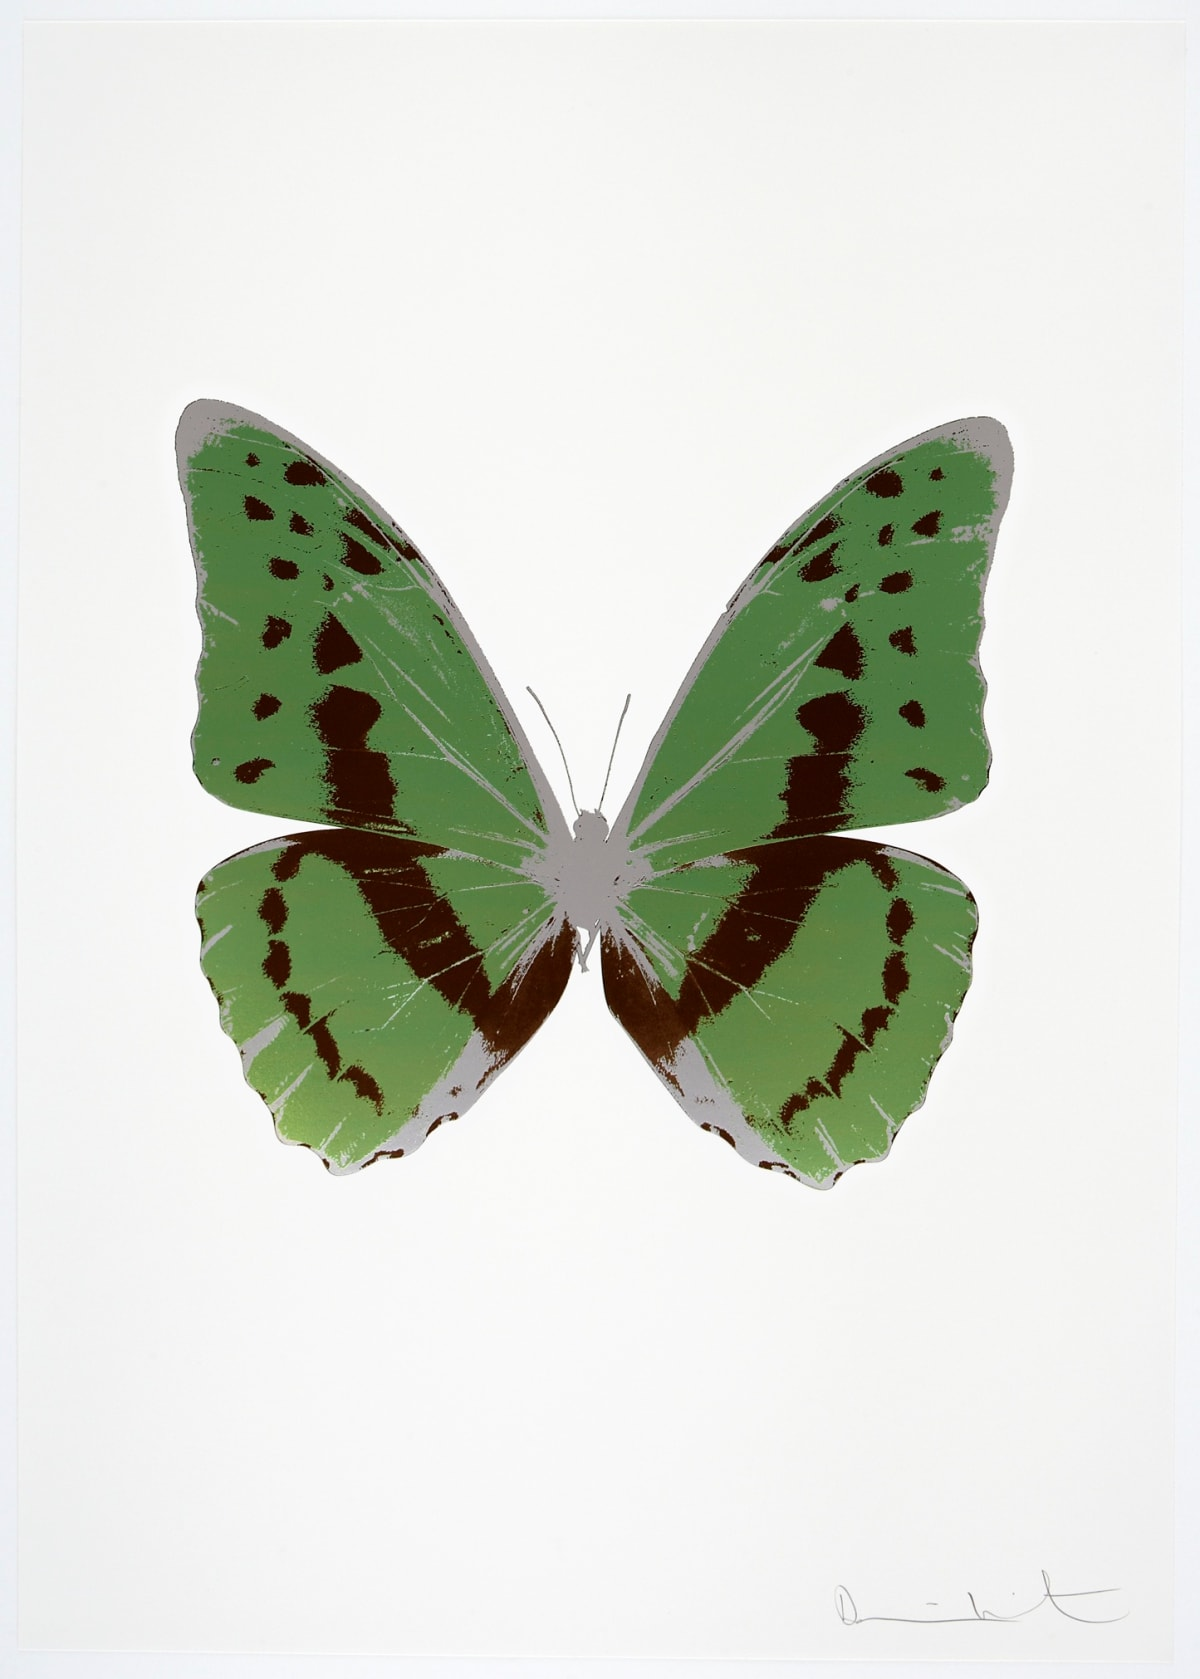 Damien Hirst The Souls III - Leaf Green/Chocolate/Silver Gloss, 2010 3 colour foil block on 300gsm Arches 88 archival paper. Signed and numbered. Published by Paul Stolper and Other Criteria 72 x 51cm OC7947 / 660-50 Edition of 15